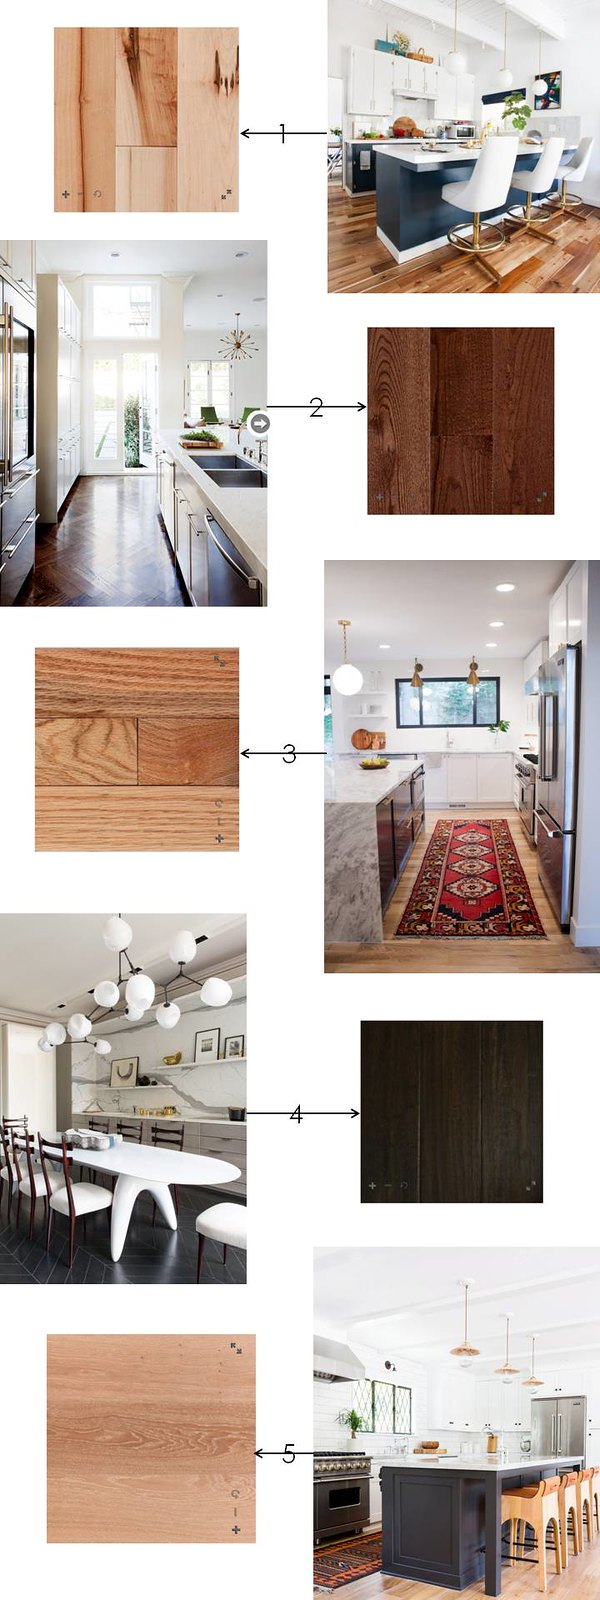 Floor & Decor hardwood flooring options